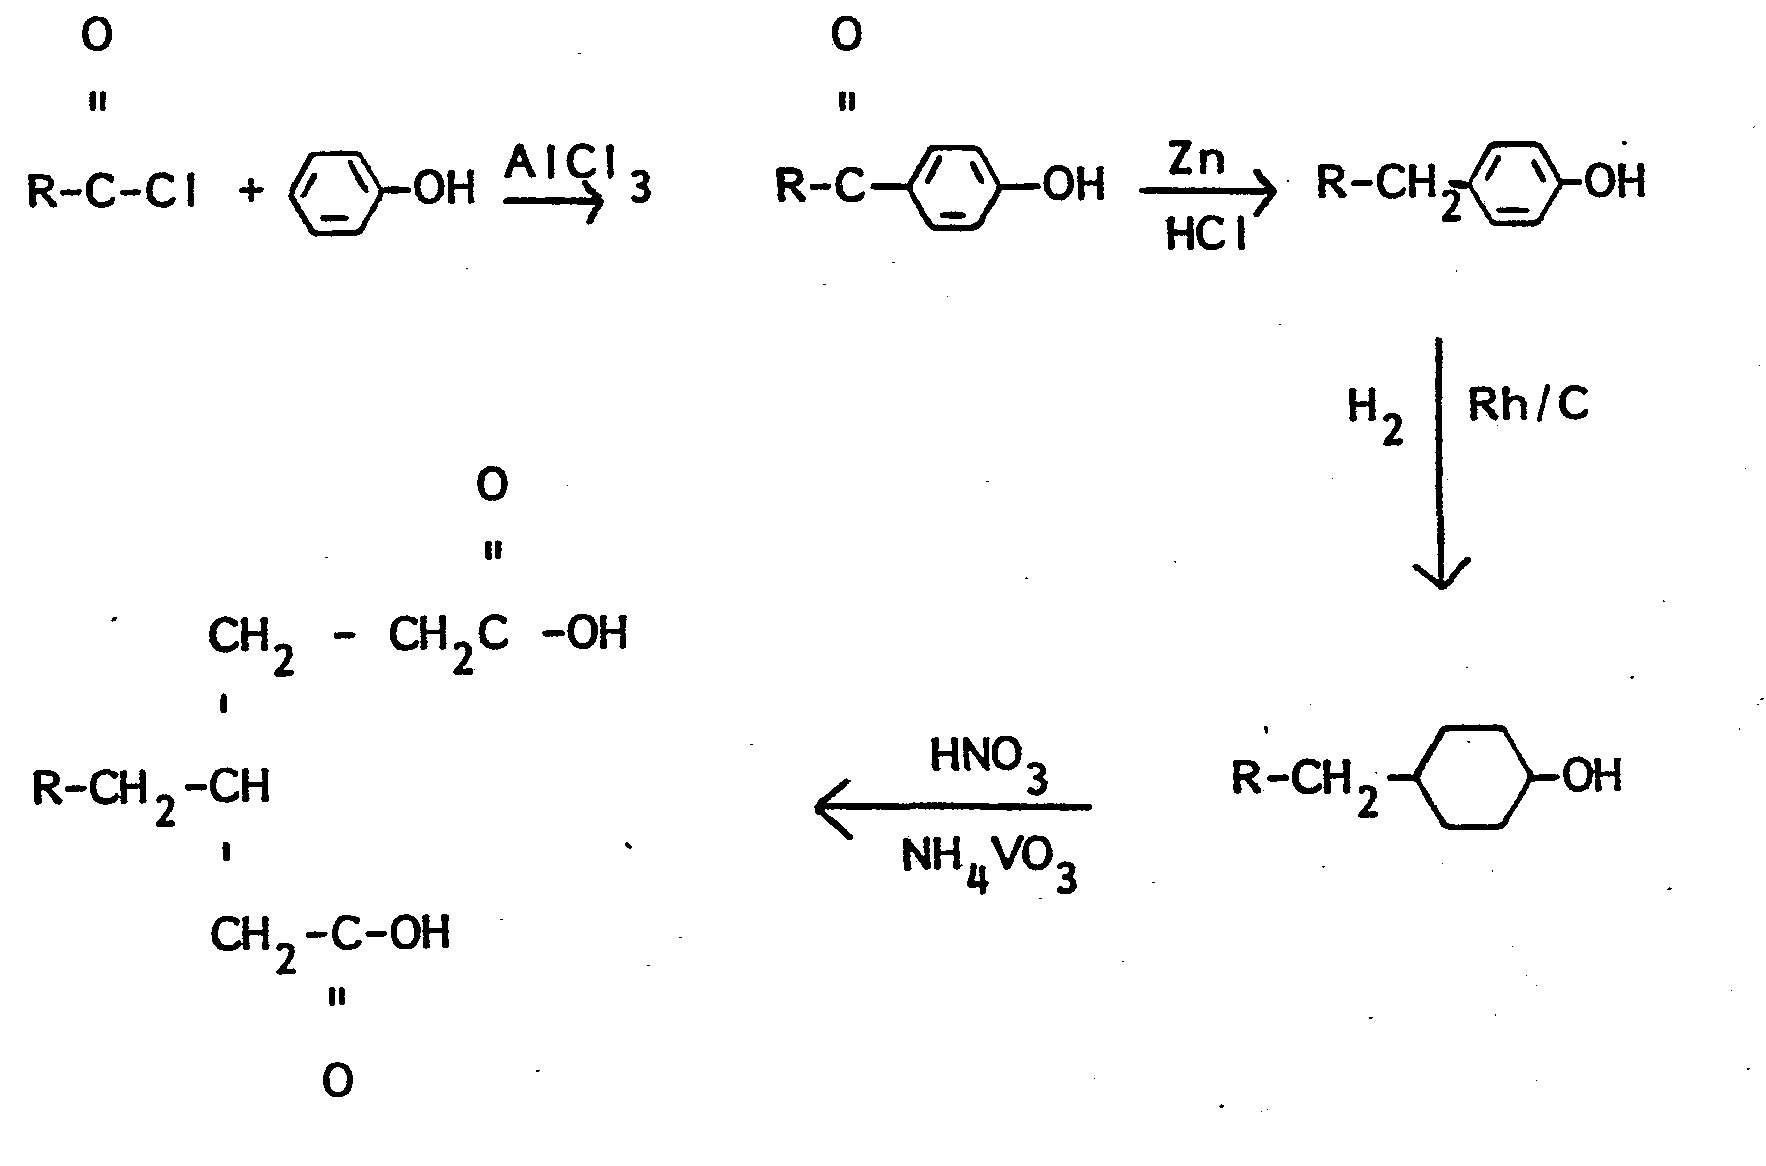 dehydration of cyclohexanol with phosphoric acid Cyclohexanol is heated with concentrated phosphoric(v) acid, and the liquid cyclohexene distils off and can be collected and purified phosphoric(v) acid tends to be used instead of sulfuric acid because it is safer and facilitates a less complex reaction.